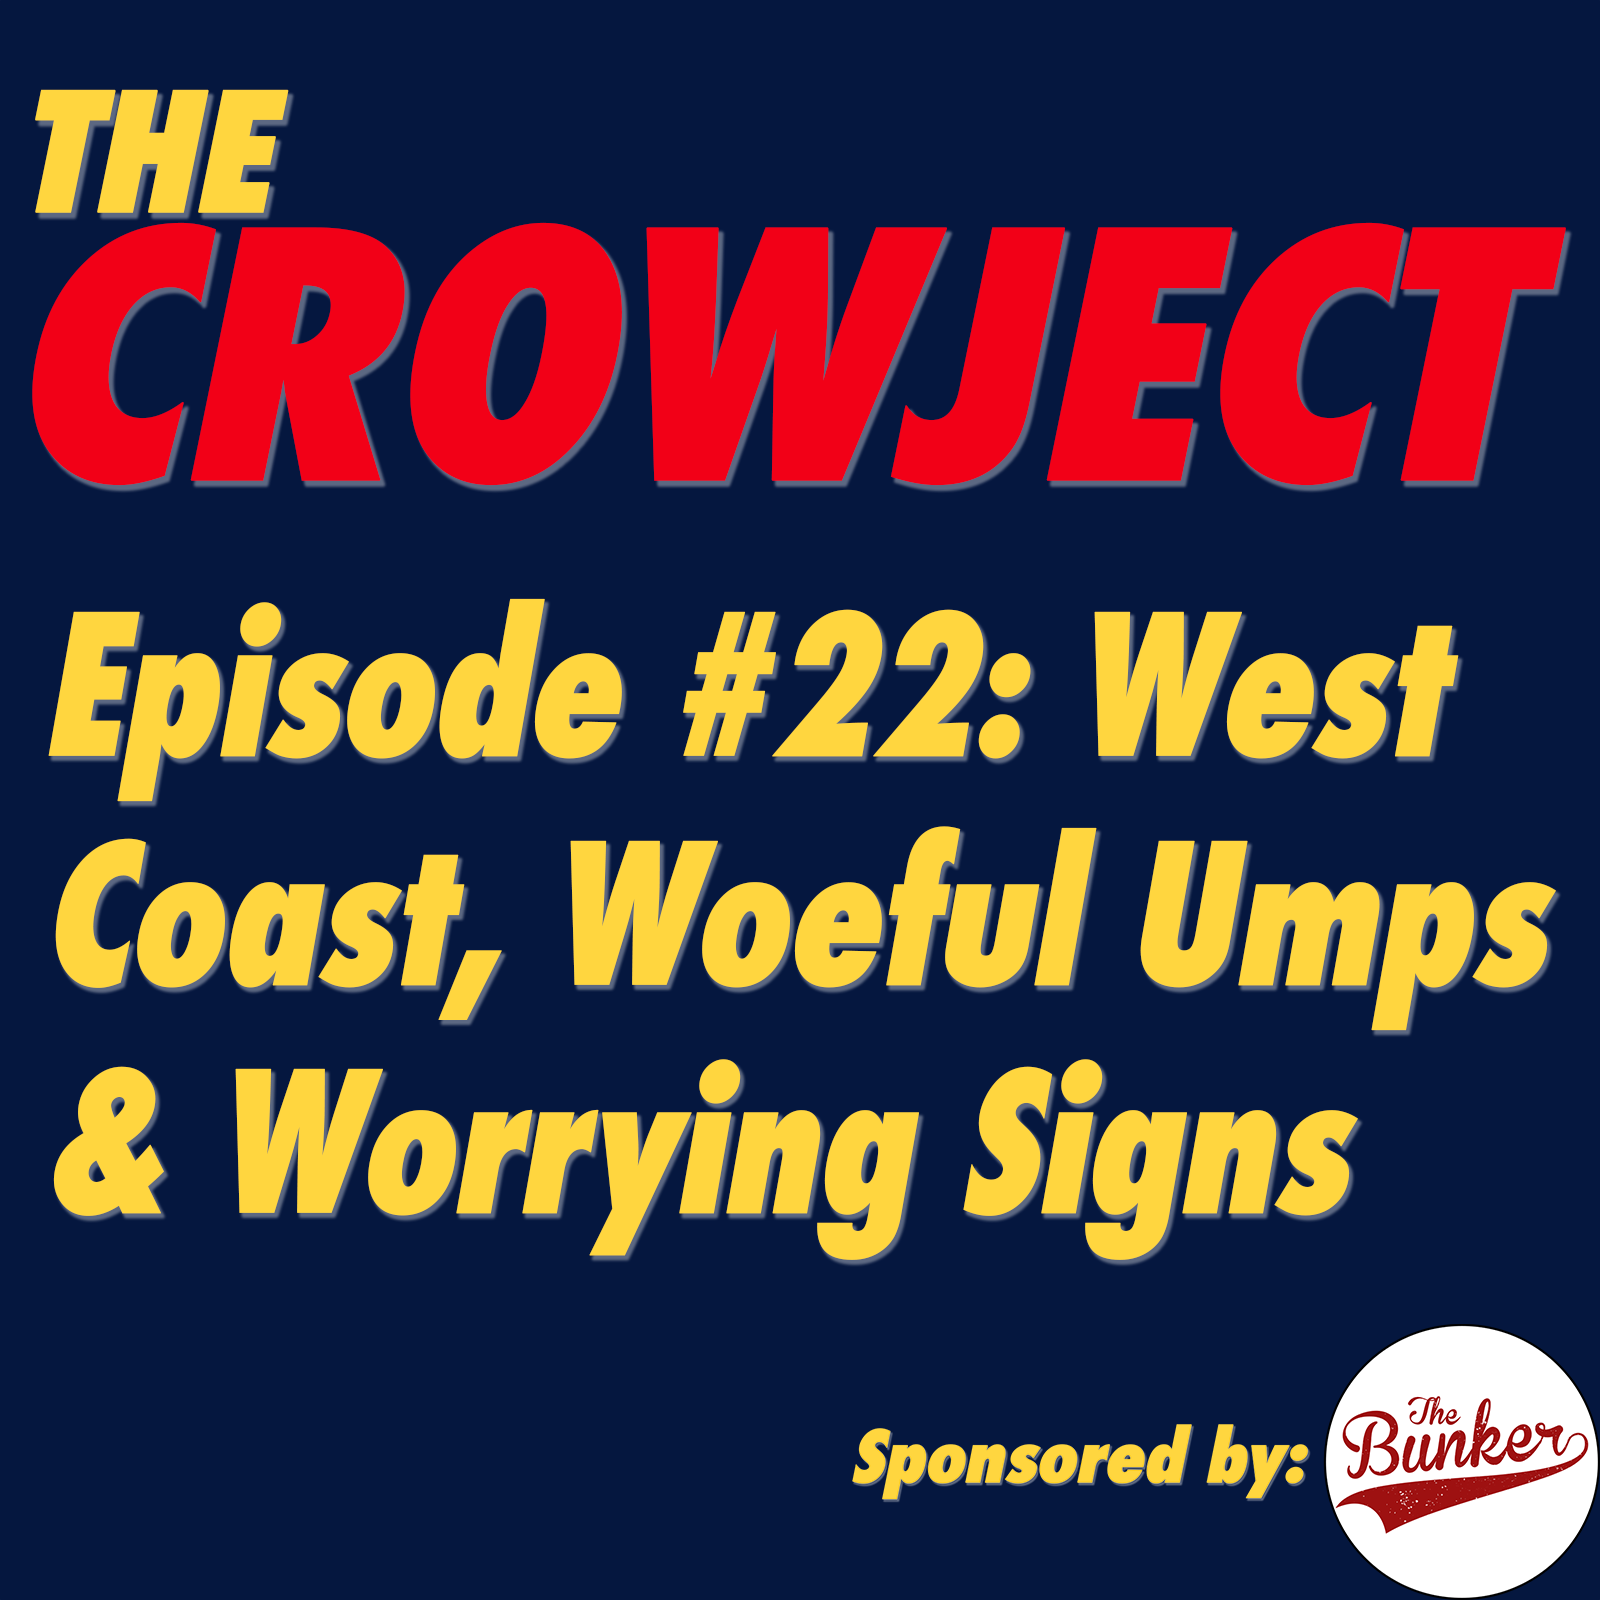 West Coast, Woeful Umps & Worrying Signs